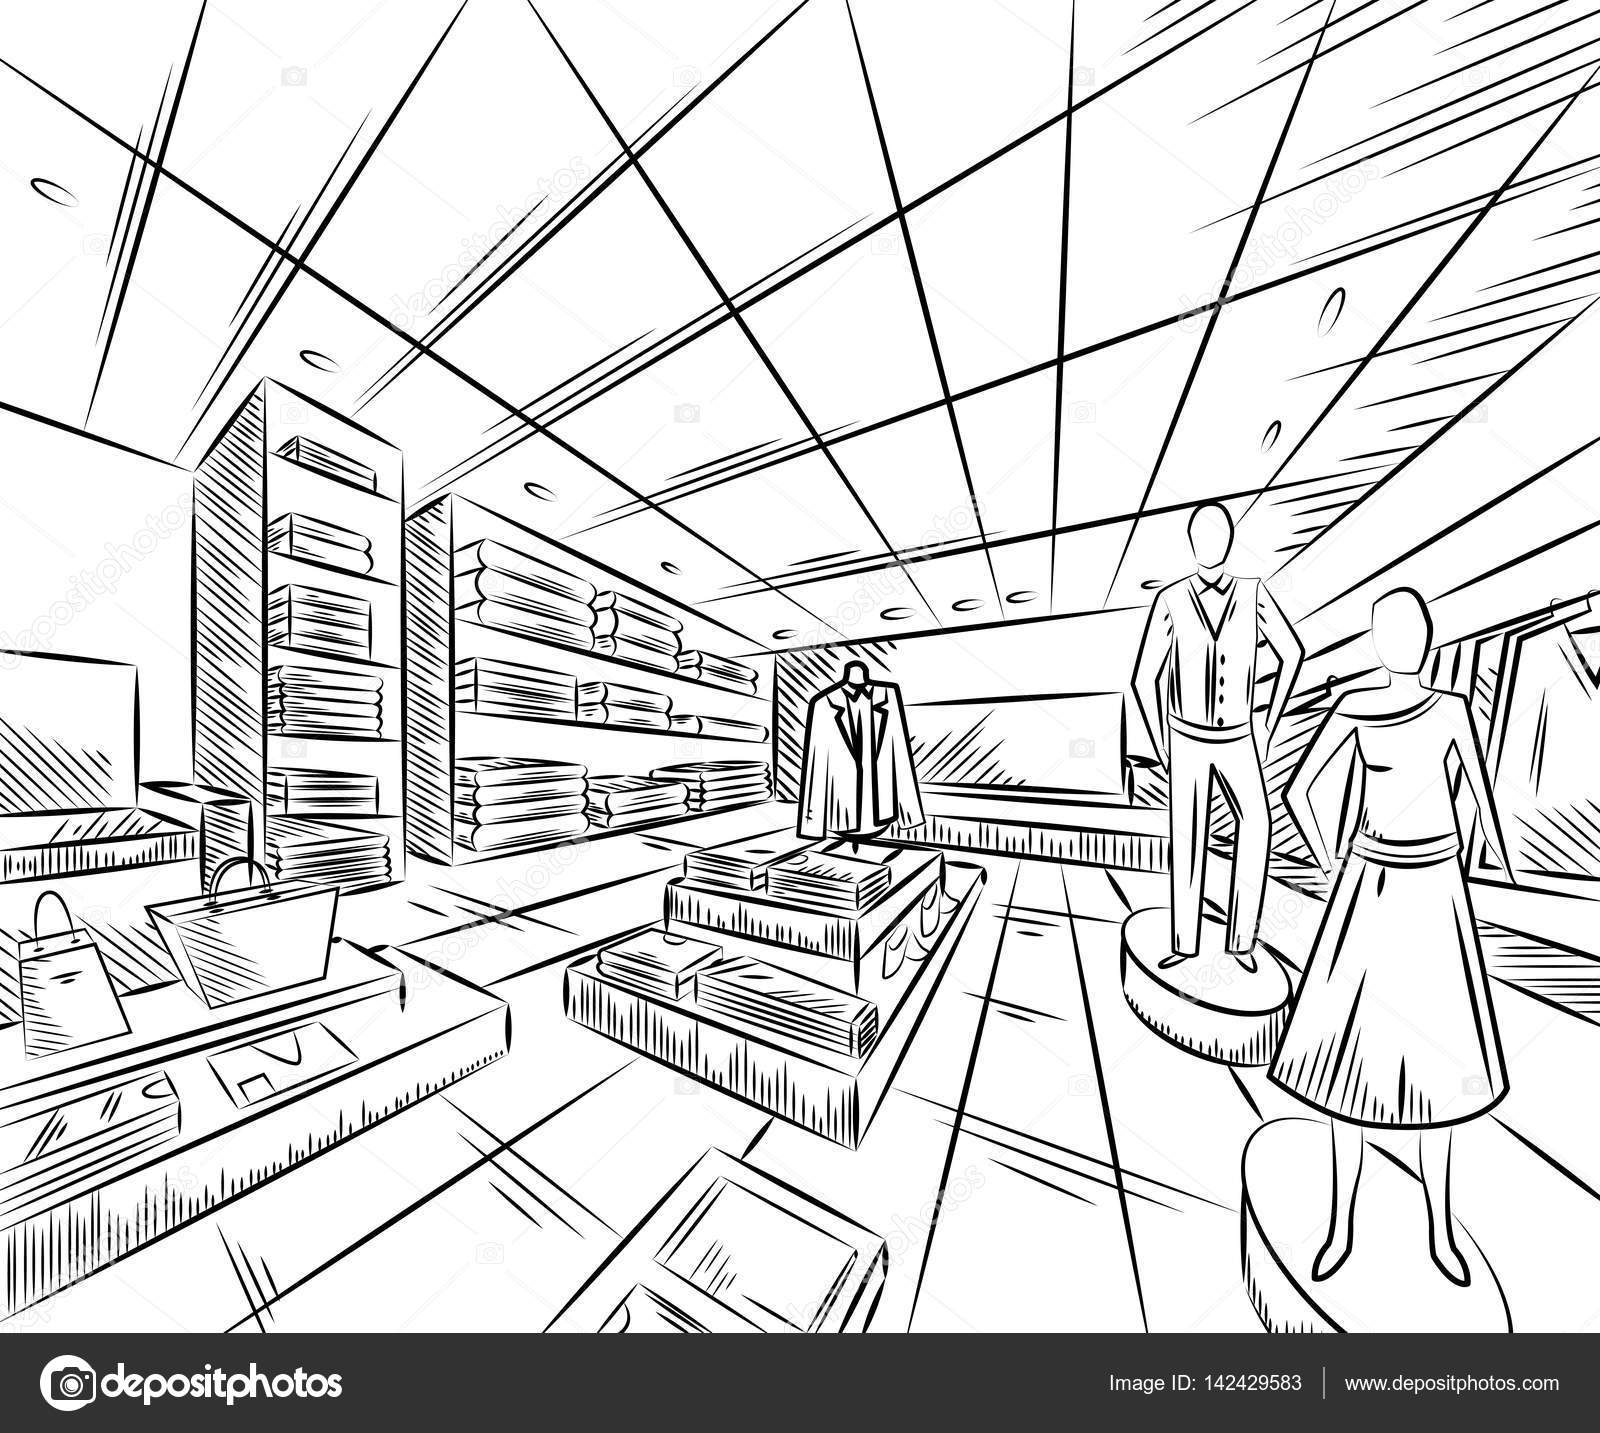 1600x1433 Fashion Store Interior Design In Sketch Style. Vintage Hand Drawn